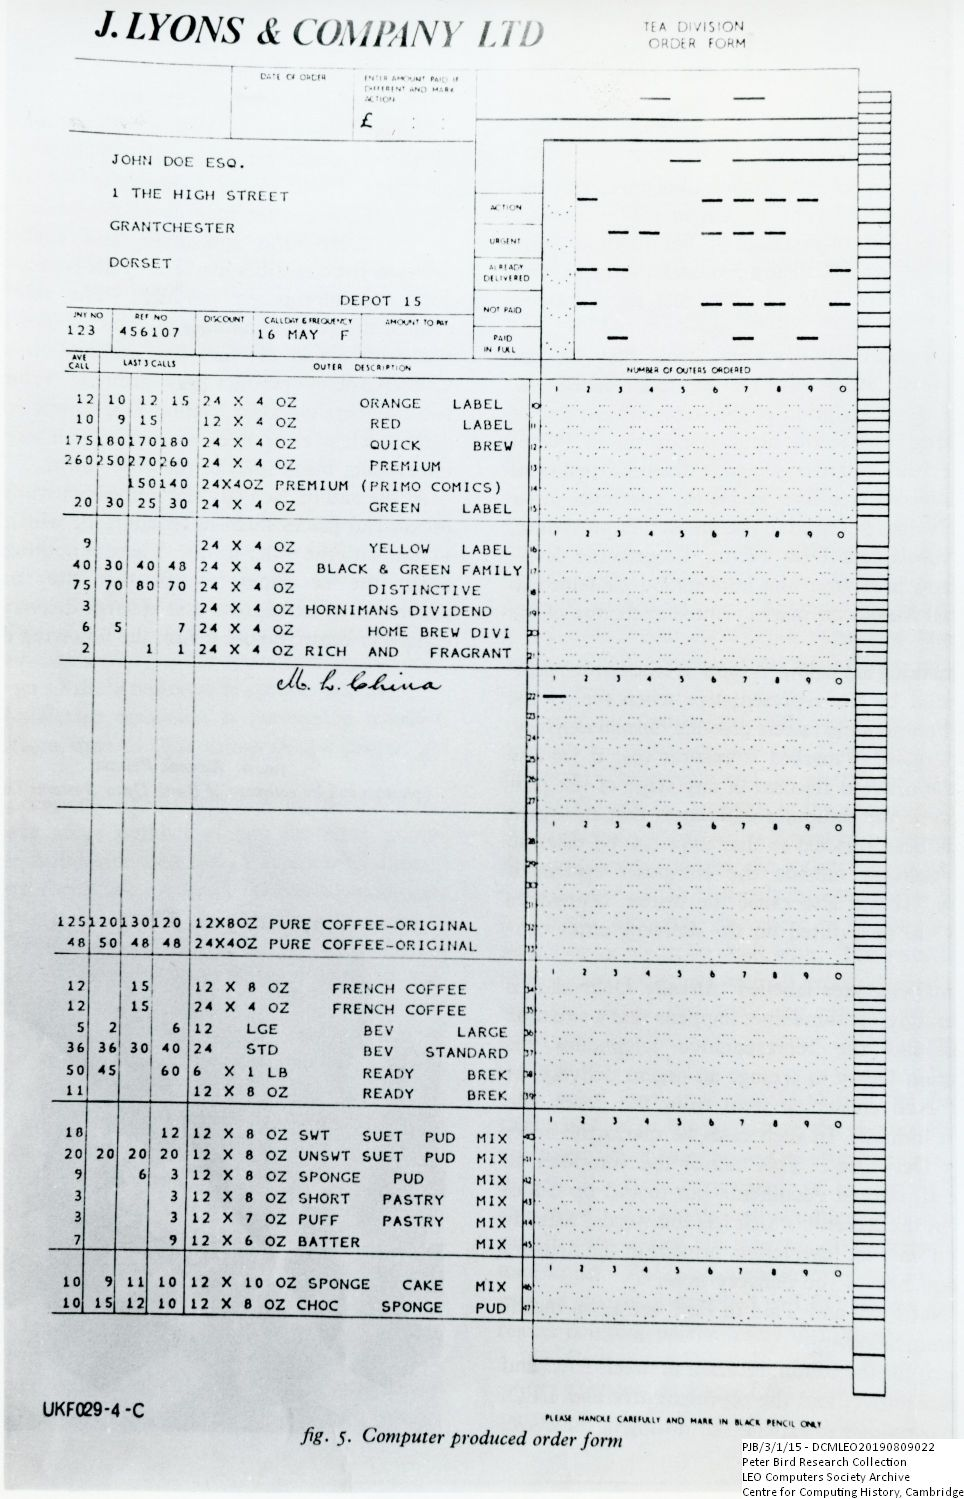 Scan of Document: 61007  Autolector Tea Division Order Form